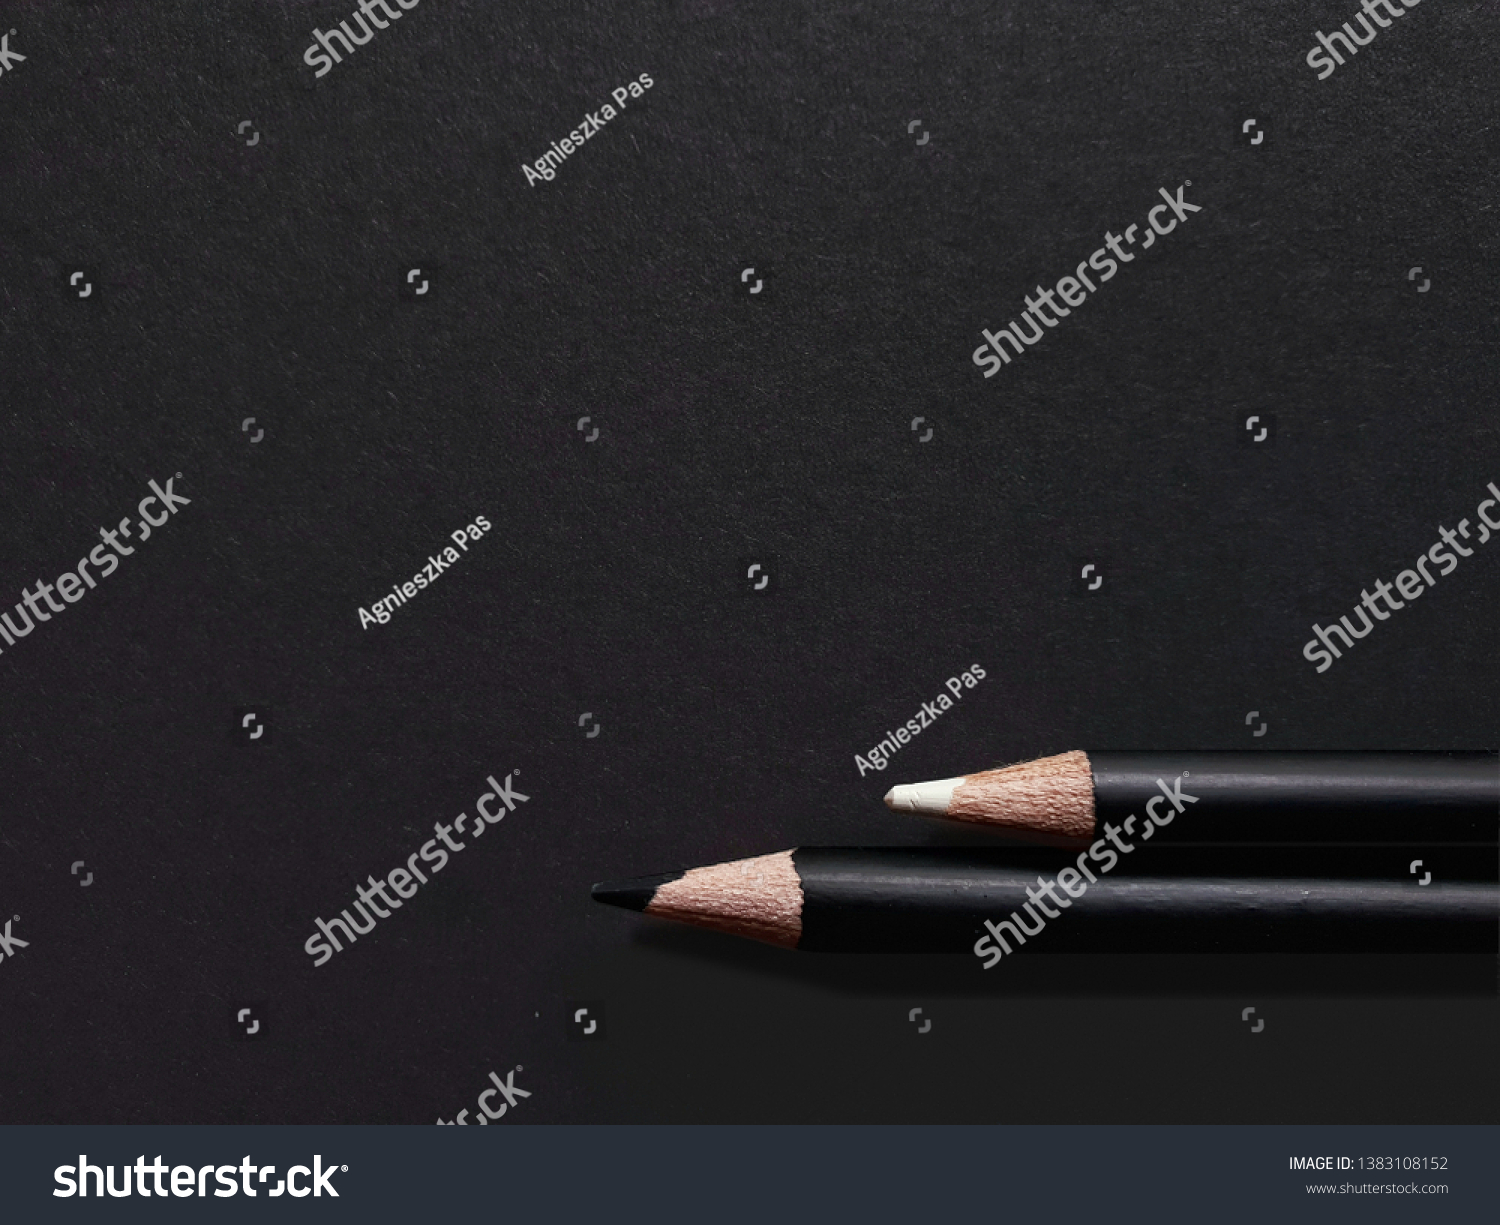 stock-photo-a-composition-of-black-and-w